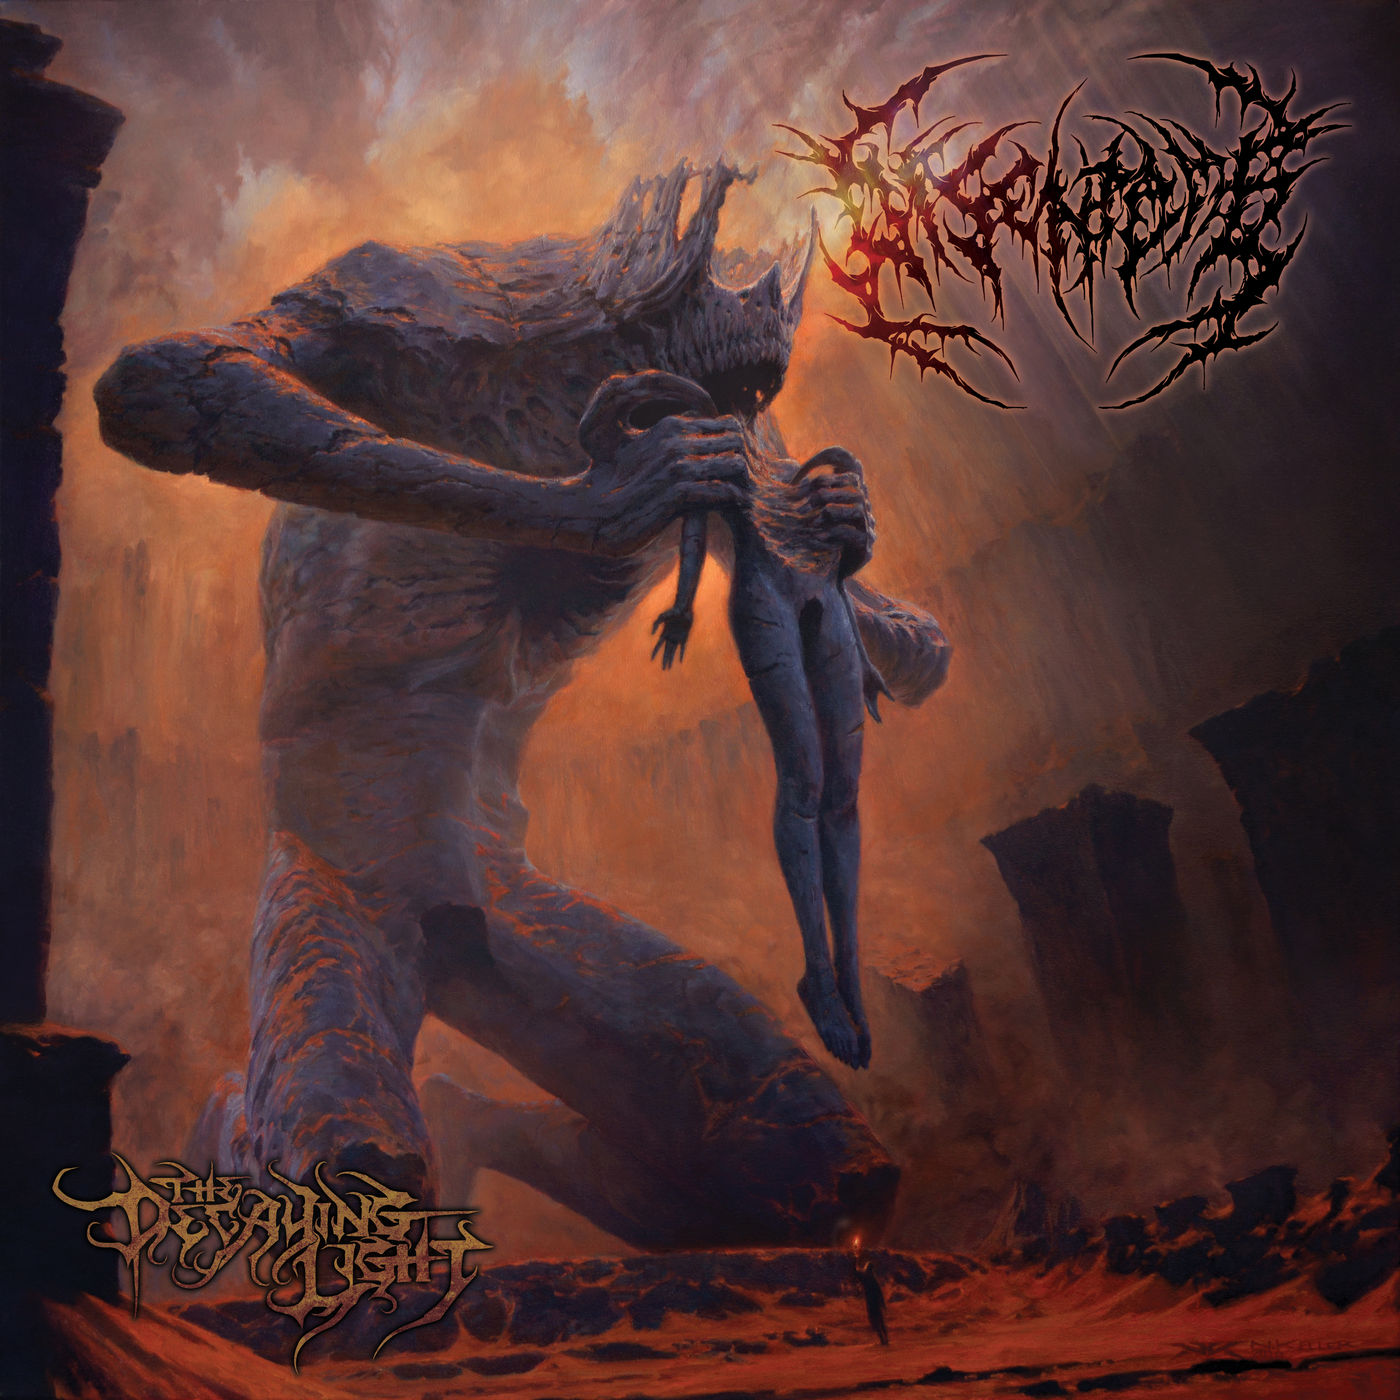 Disentomb - The Decaying Light (2019)